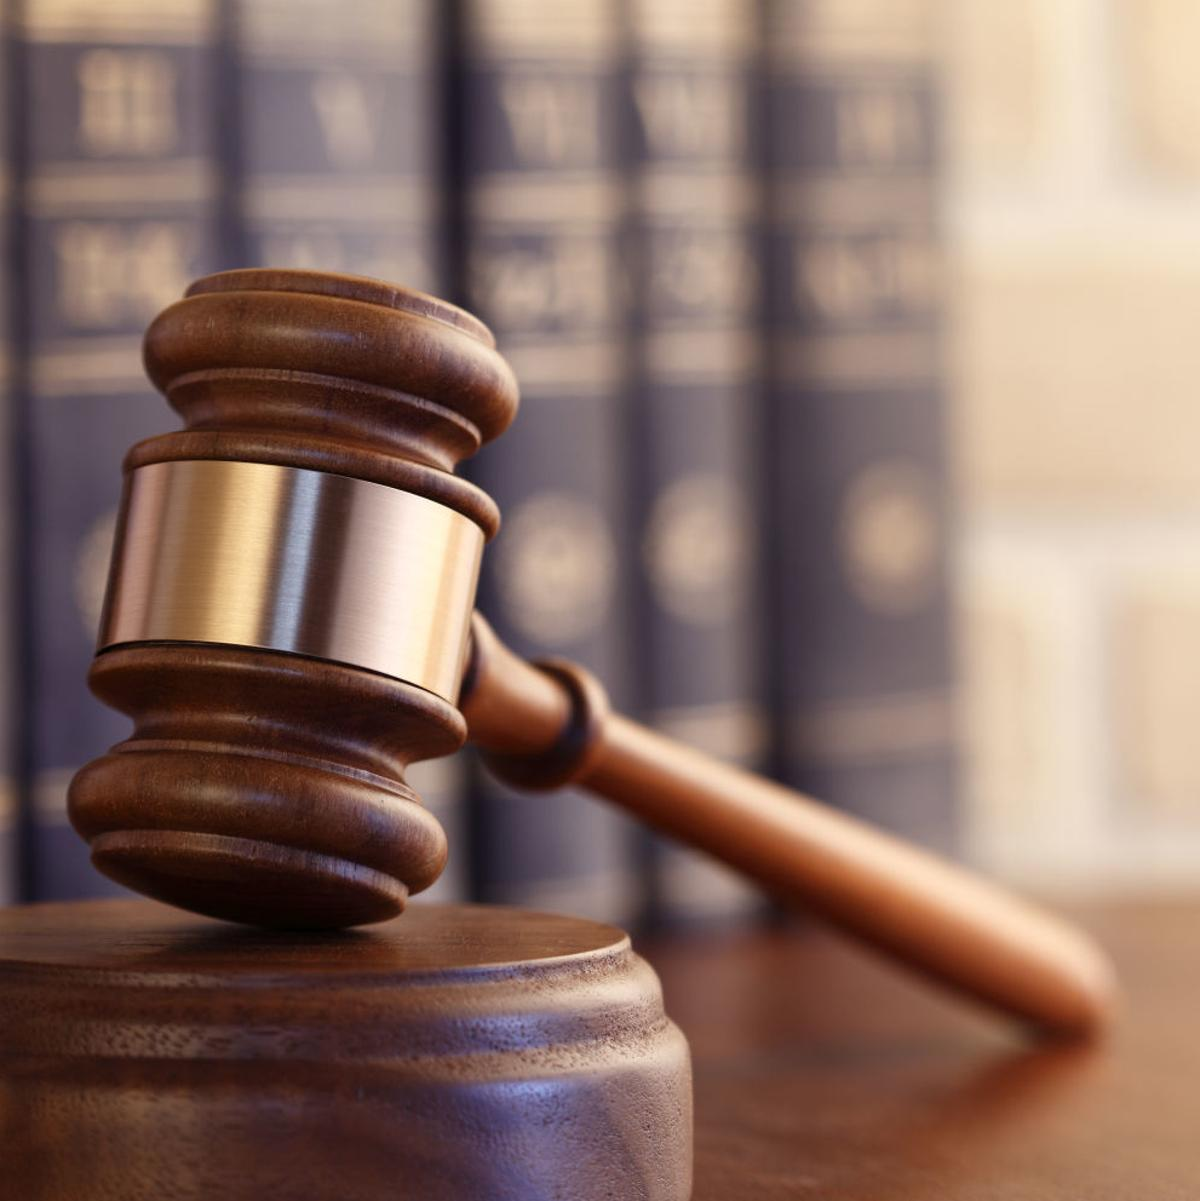 Tucson federal judge fines 14 people for skipping jury duty